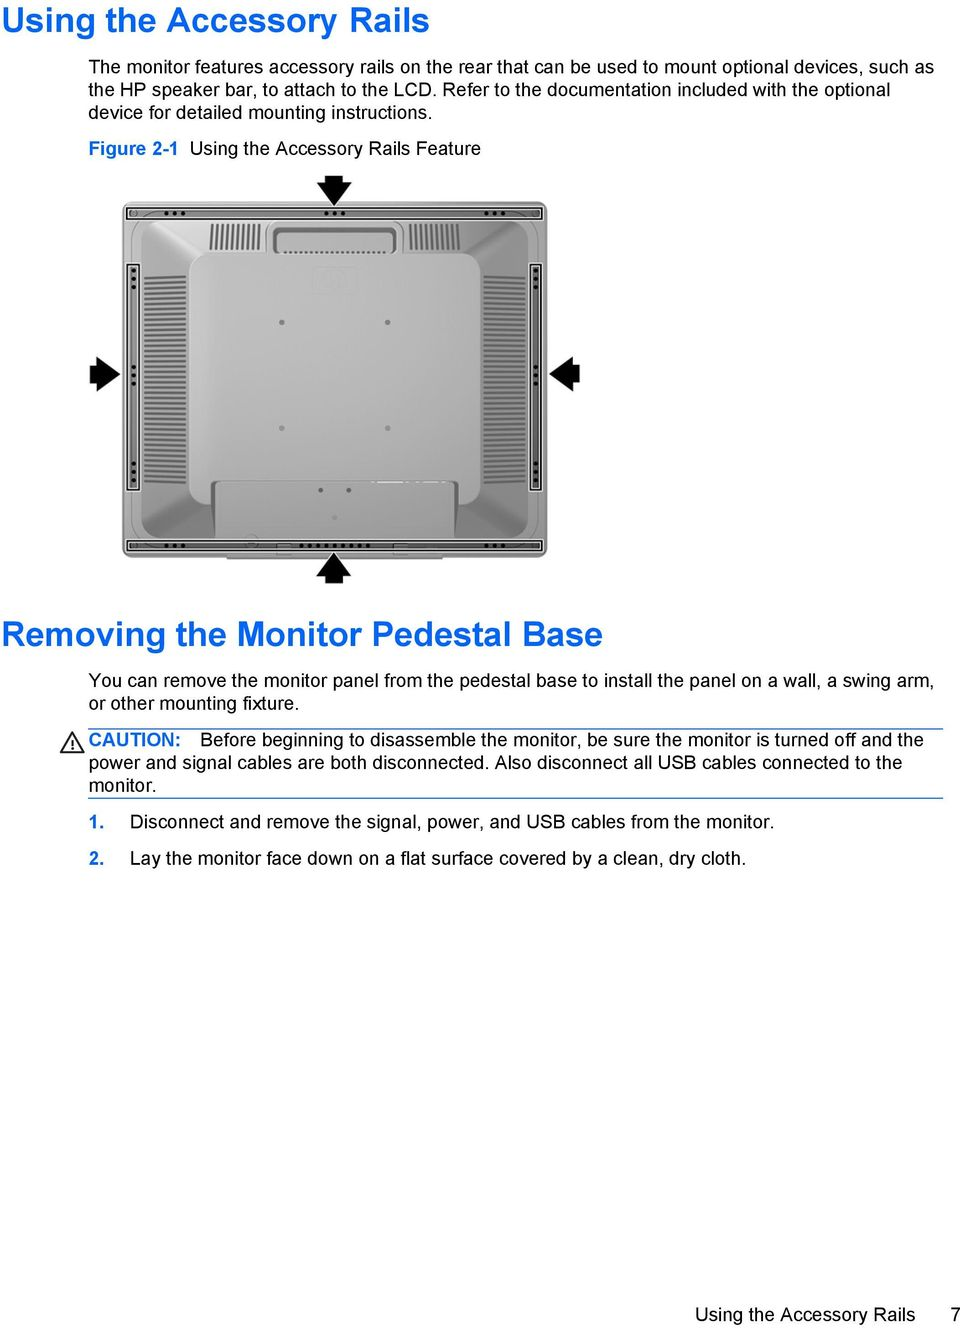 Figure 2-1 Using the Accessory Rails Feature Removing the Monitor Pedestal Base You can remove the monitor panel from the pedestal base to install the panel on a wall, a swing arm, or other mounting